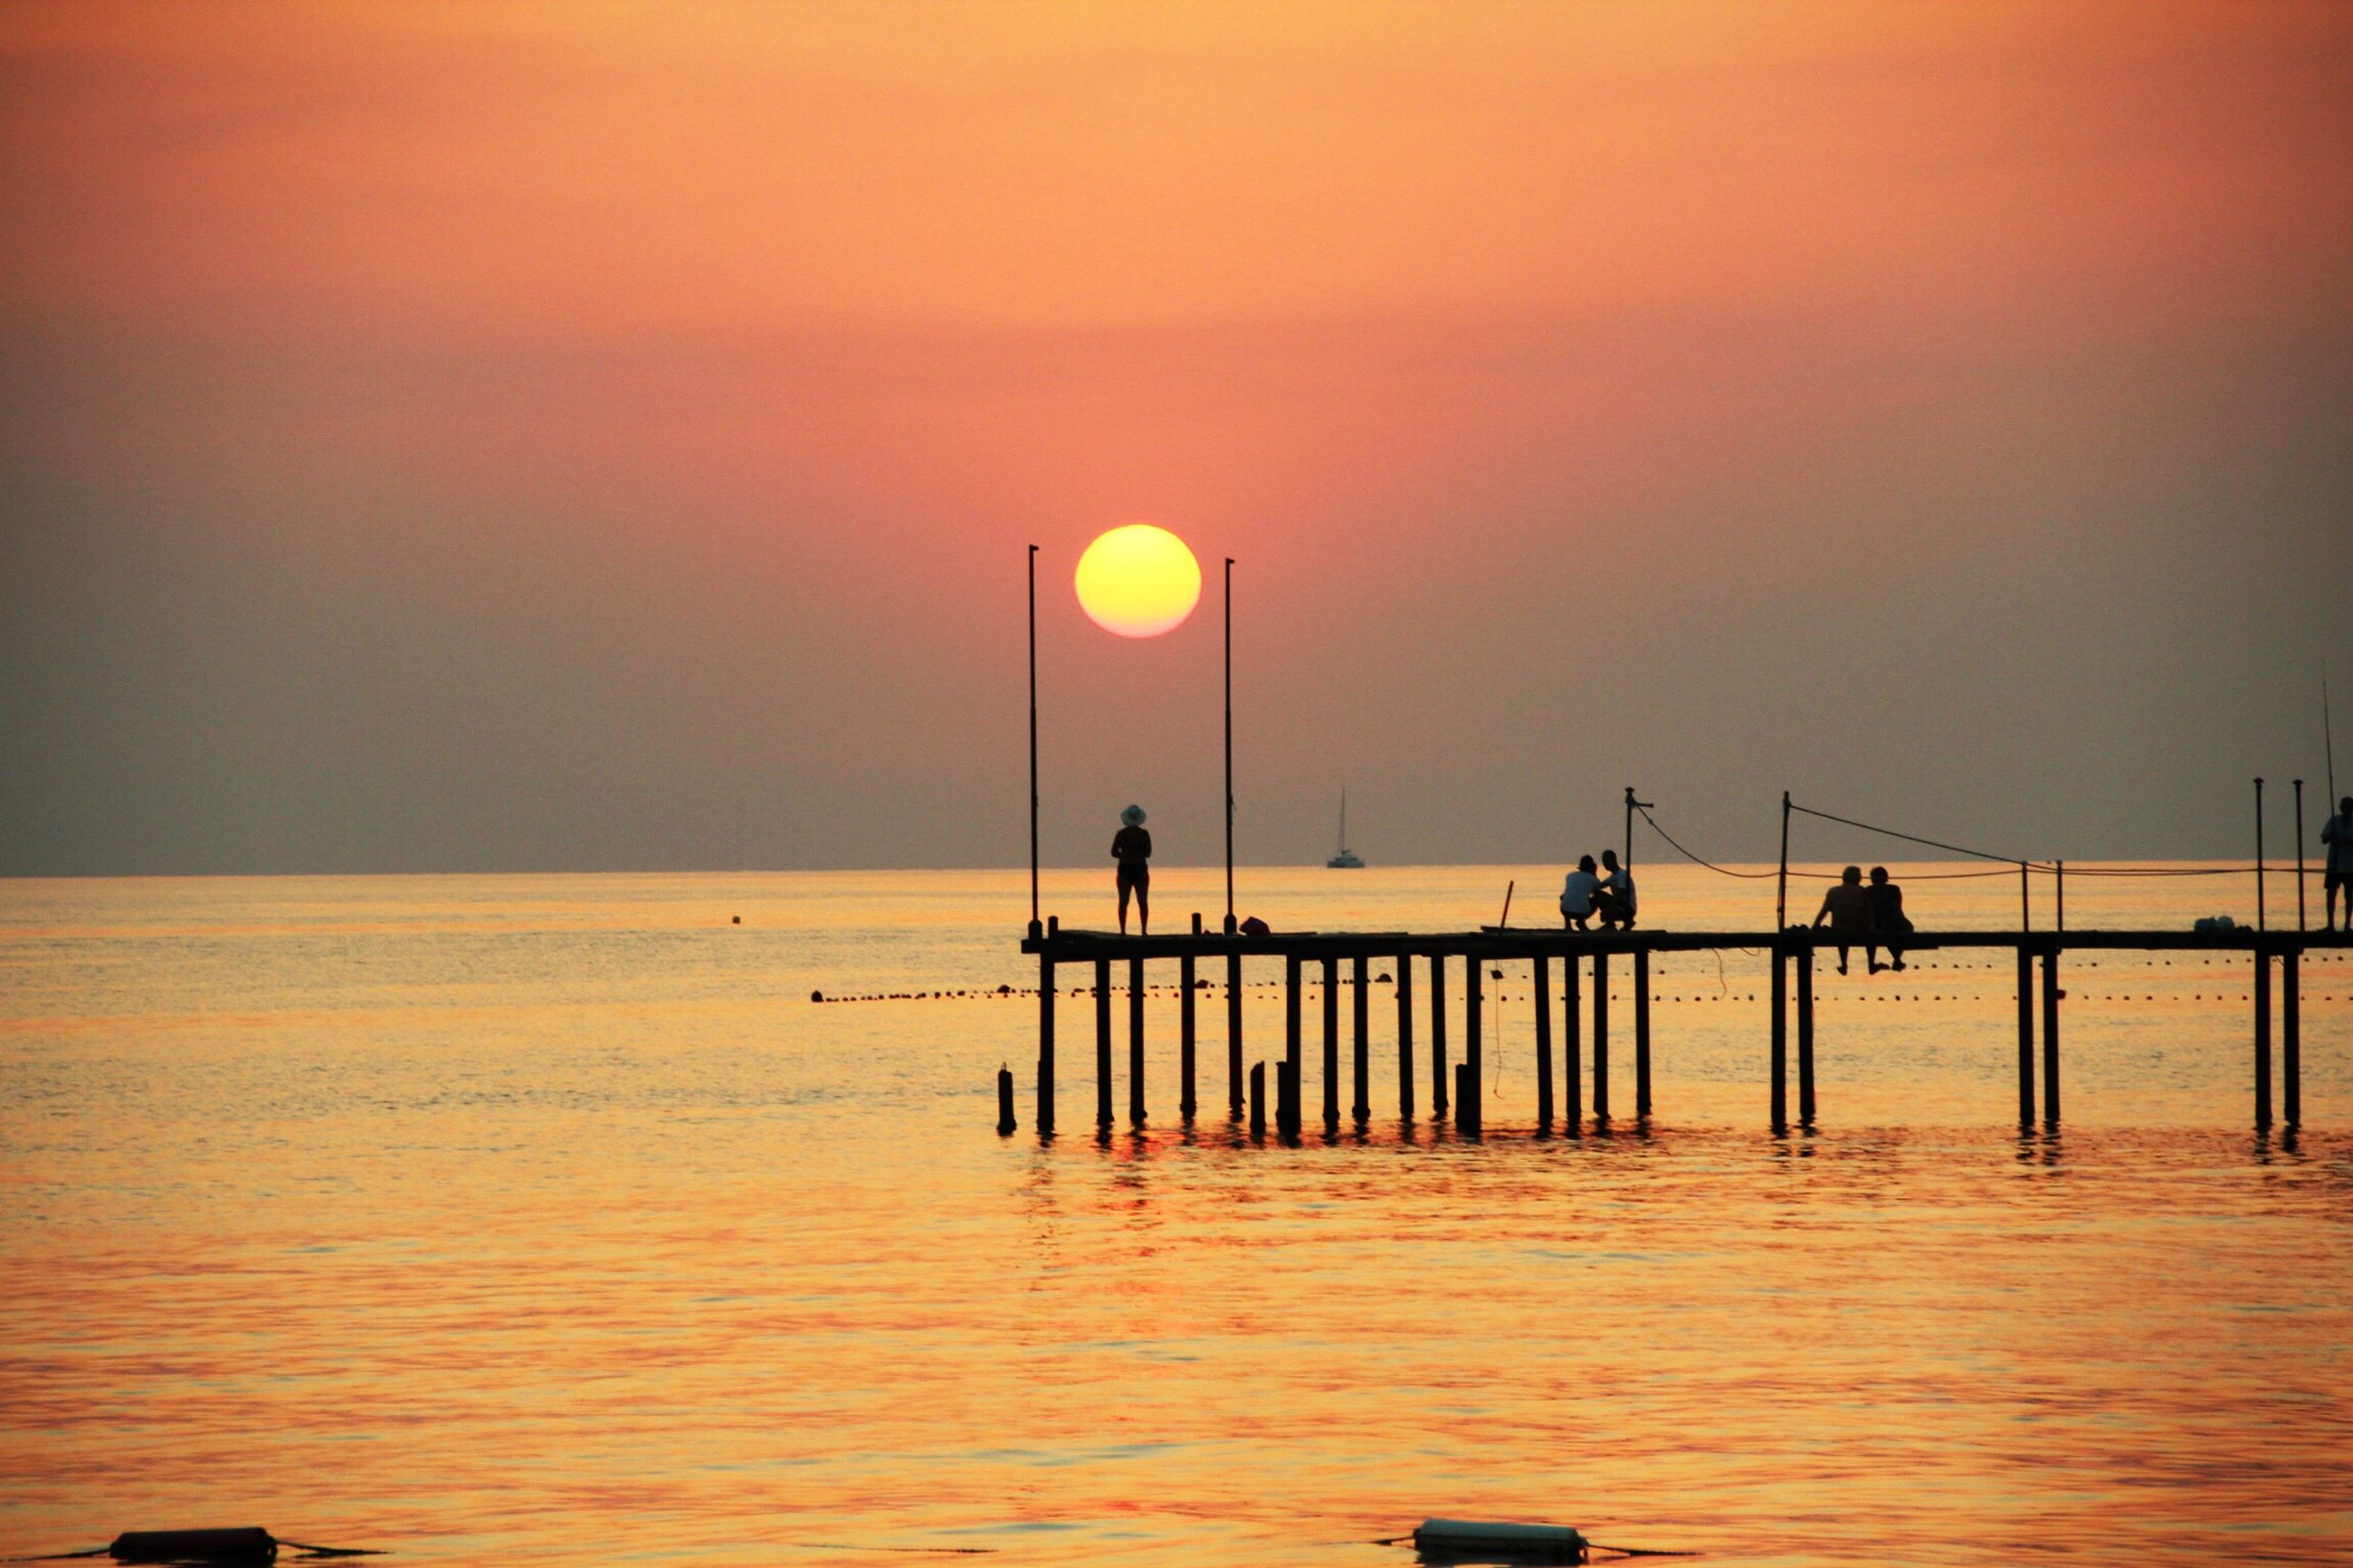 sea, sunset, water, horizon over water, sky, nature, tranquility, beauty in nature, tranquil scene, sun, outdoors, no people, day